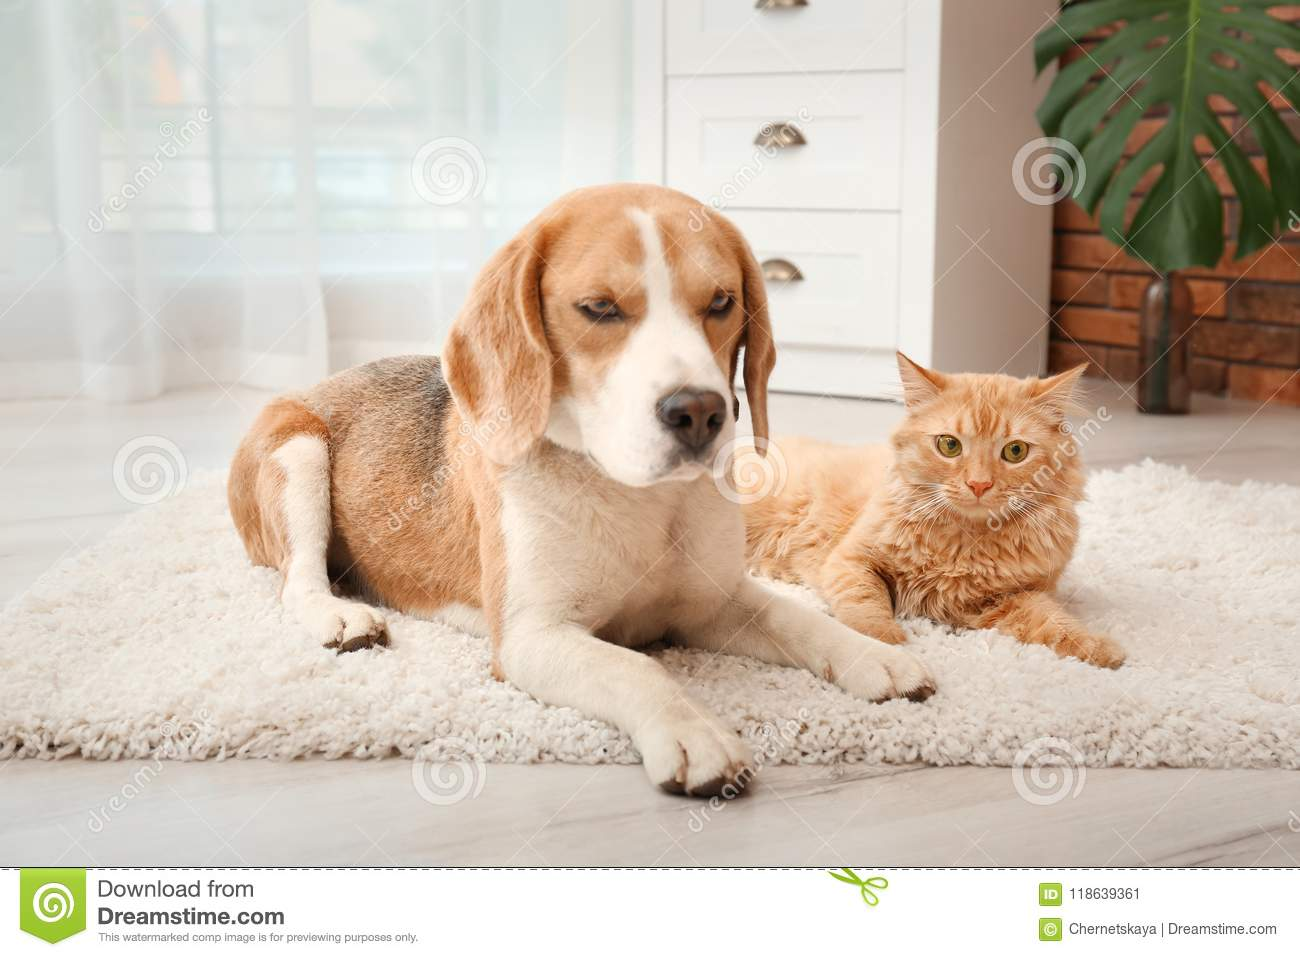 Adorable cat and dog lying on rug at home.